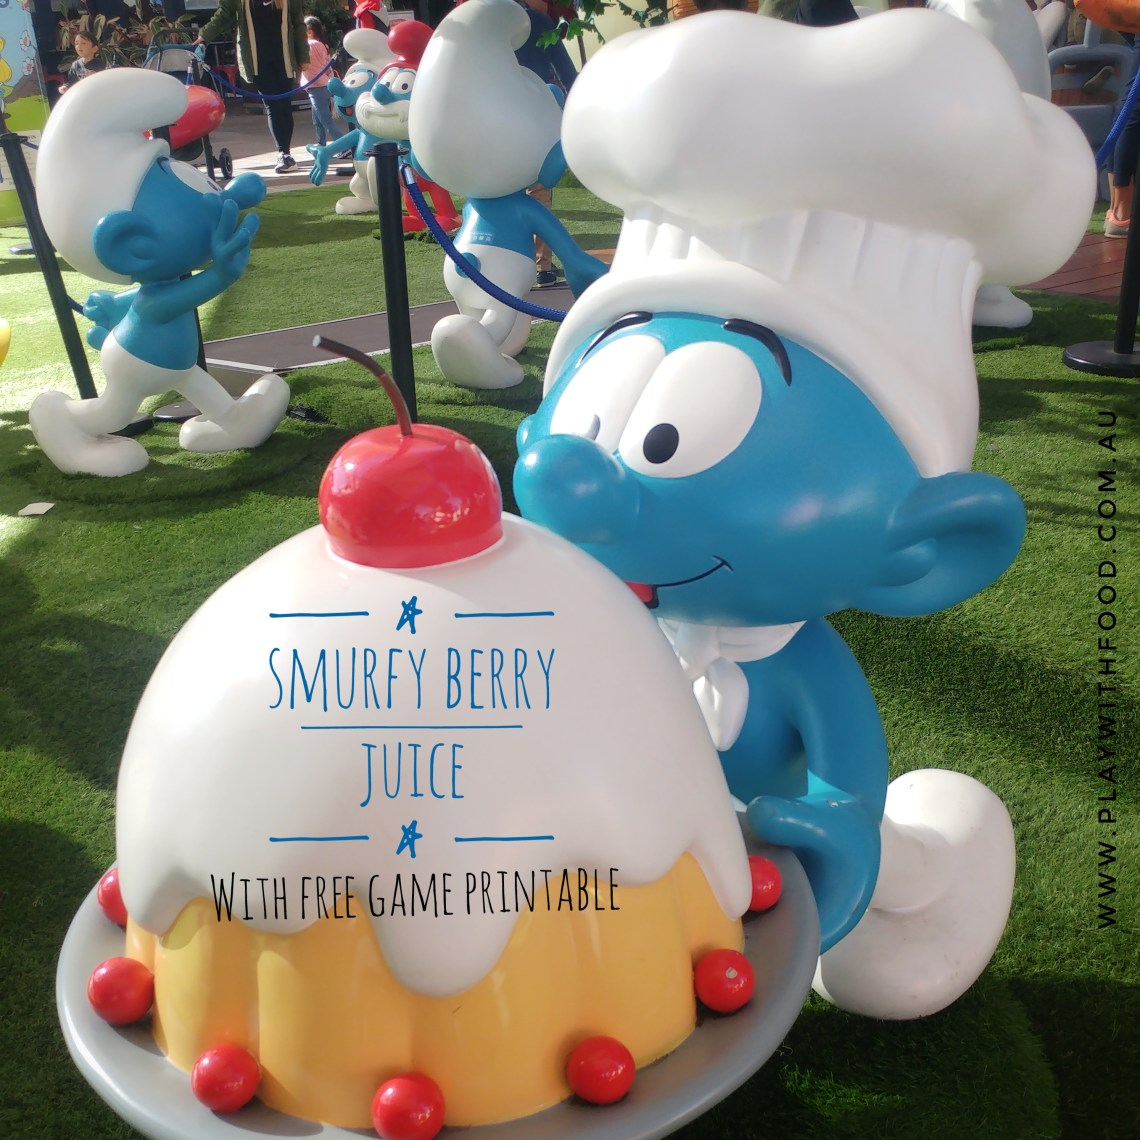 Smurfy Berry Juice and Free Printable Game Card - Perfect to Entertain the Kids   Play with Food by Simone Emery